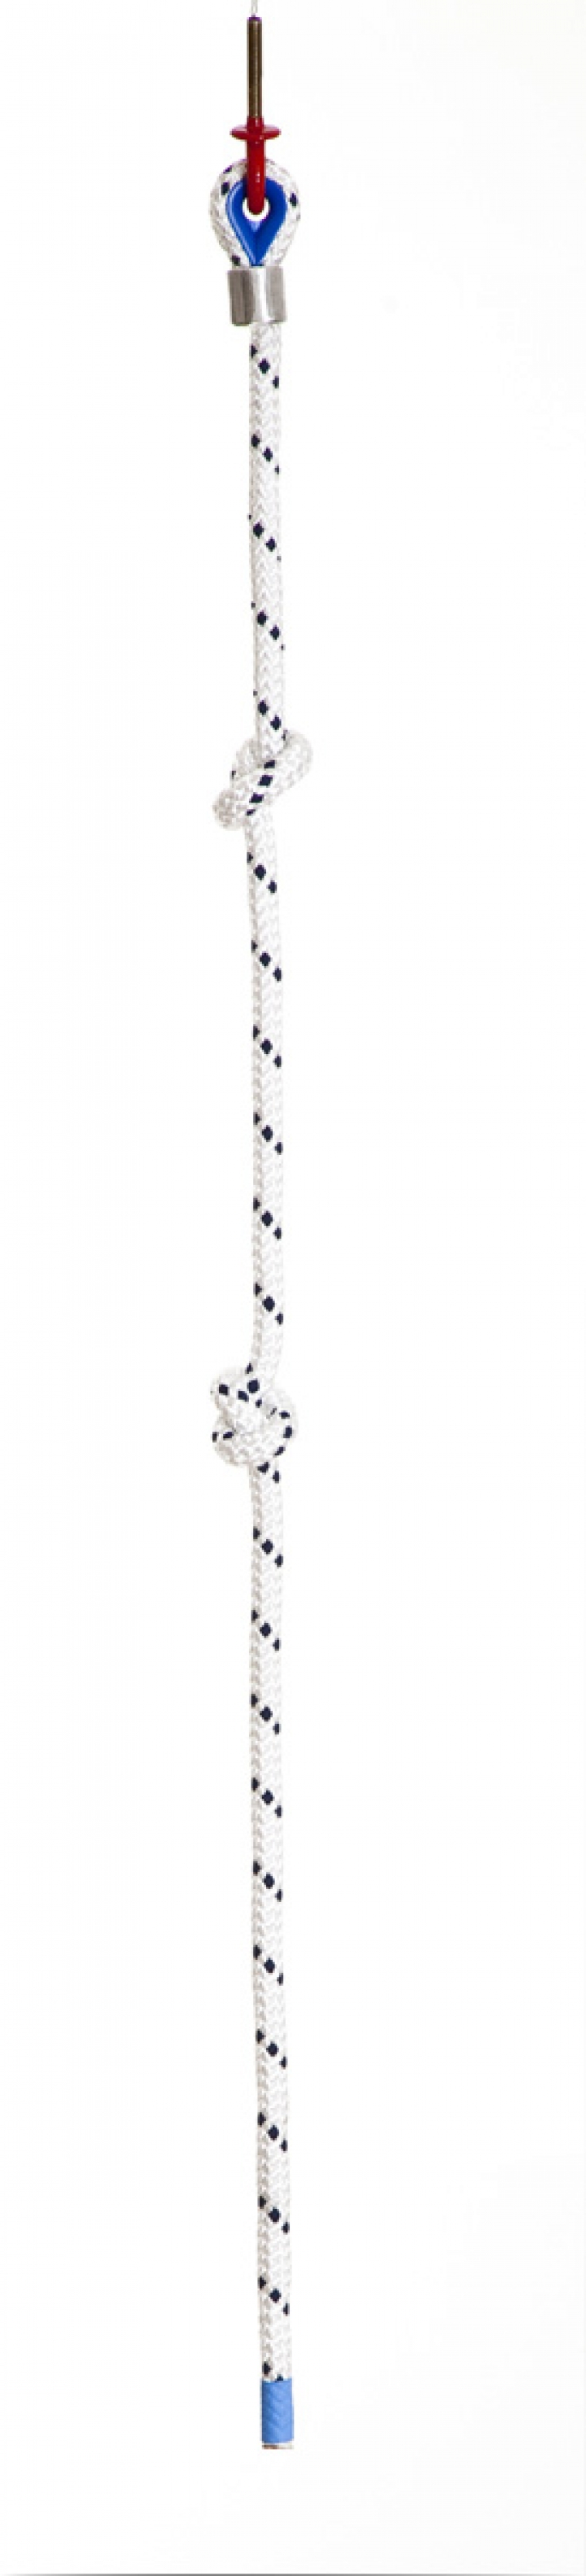 Polyester climbing rope